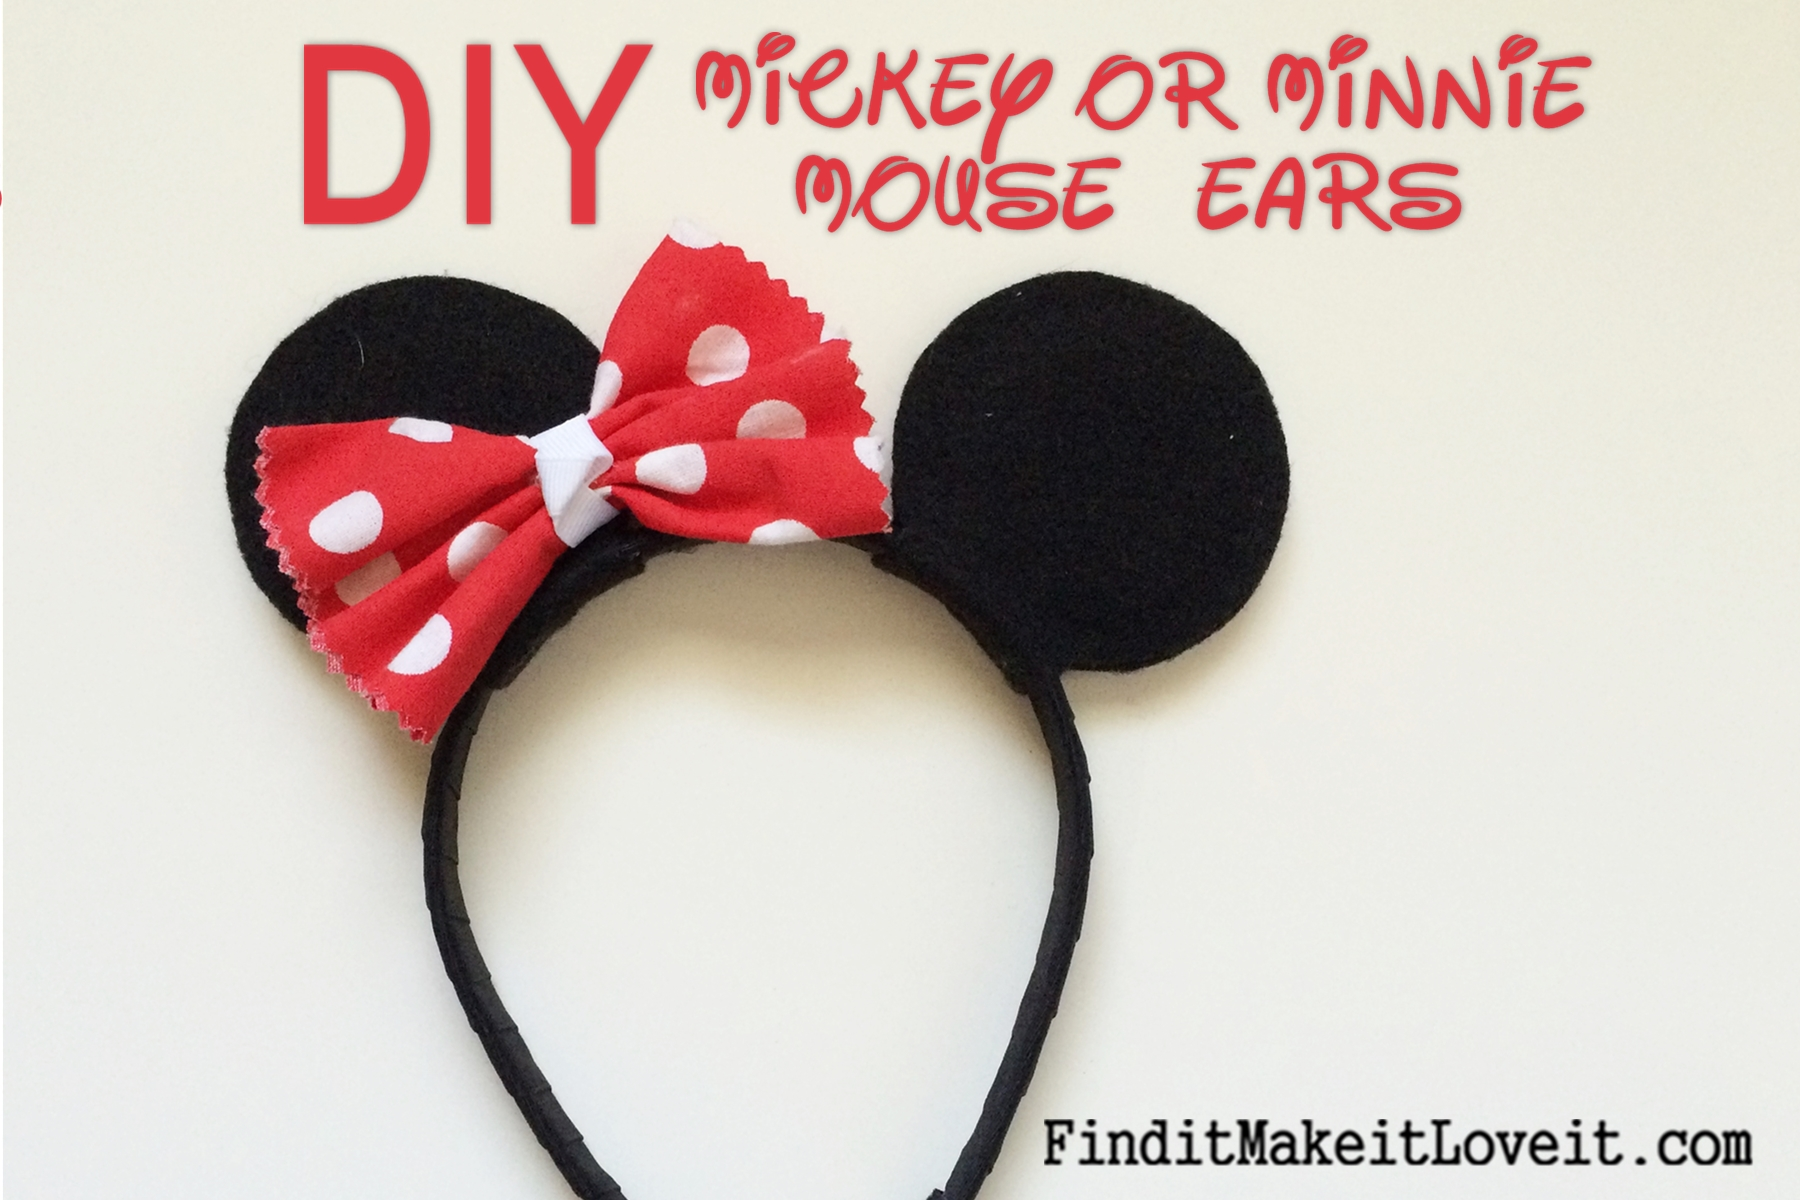 Diy Mickey Or Minnie Mouse Ears Find It Make It Love It